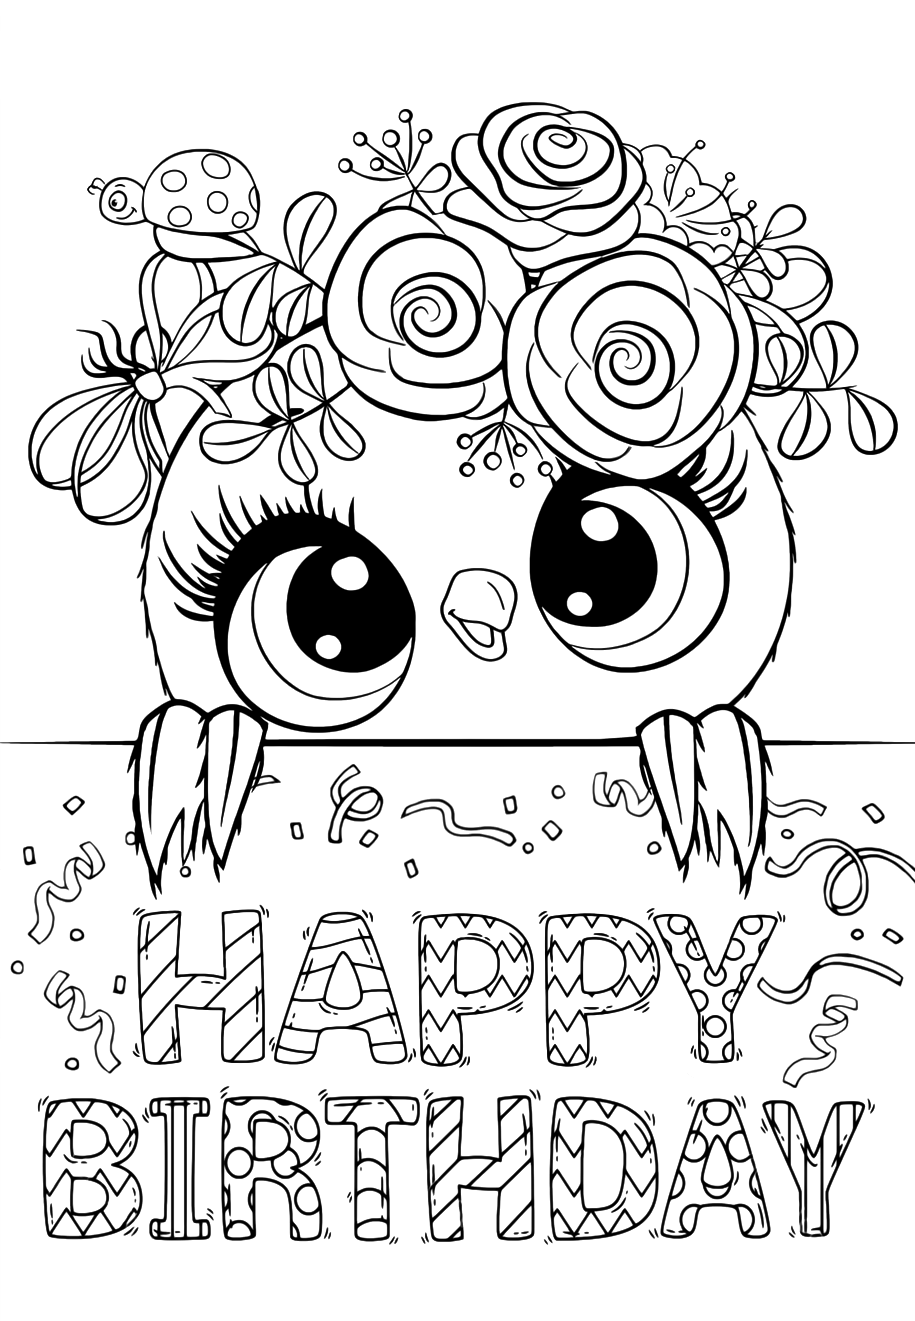 Happy birthday - Coloring pages for you